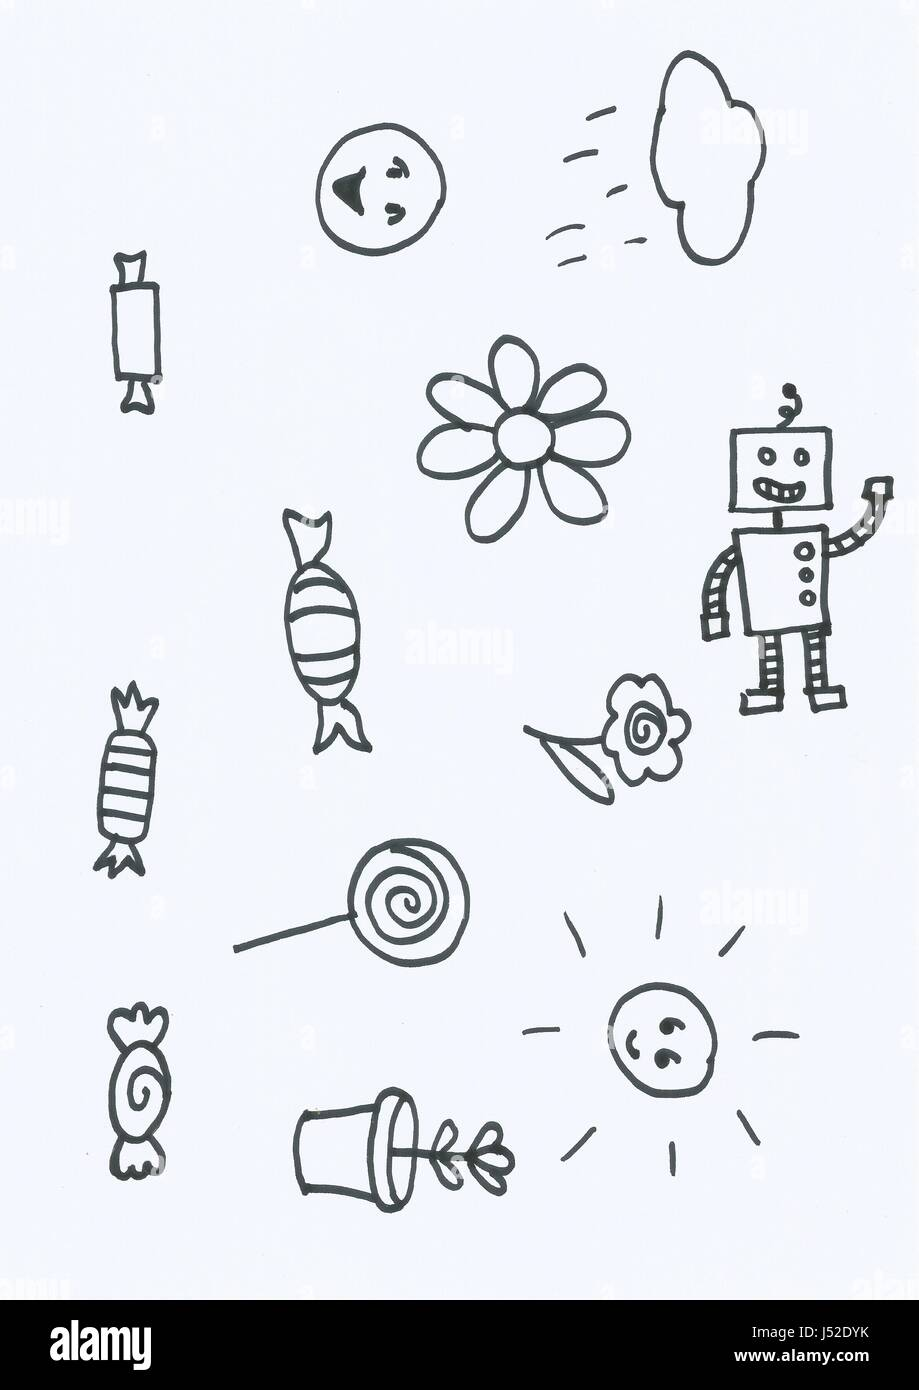 Series of scanned doodles in black ink on paper - Stock Image